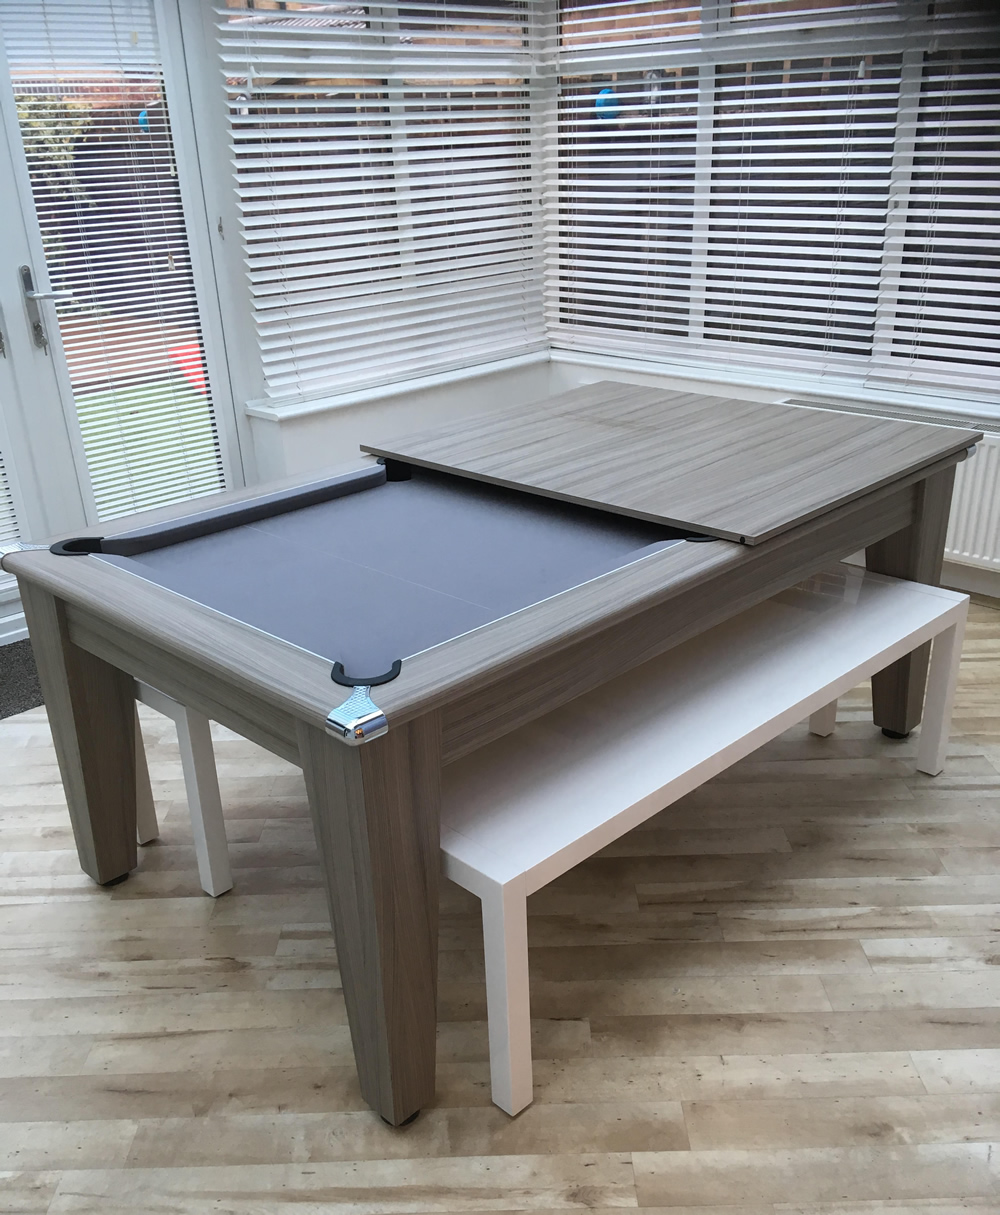 Driftwood dining pool table recovered in silver wool cloth